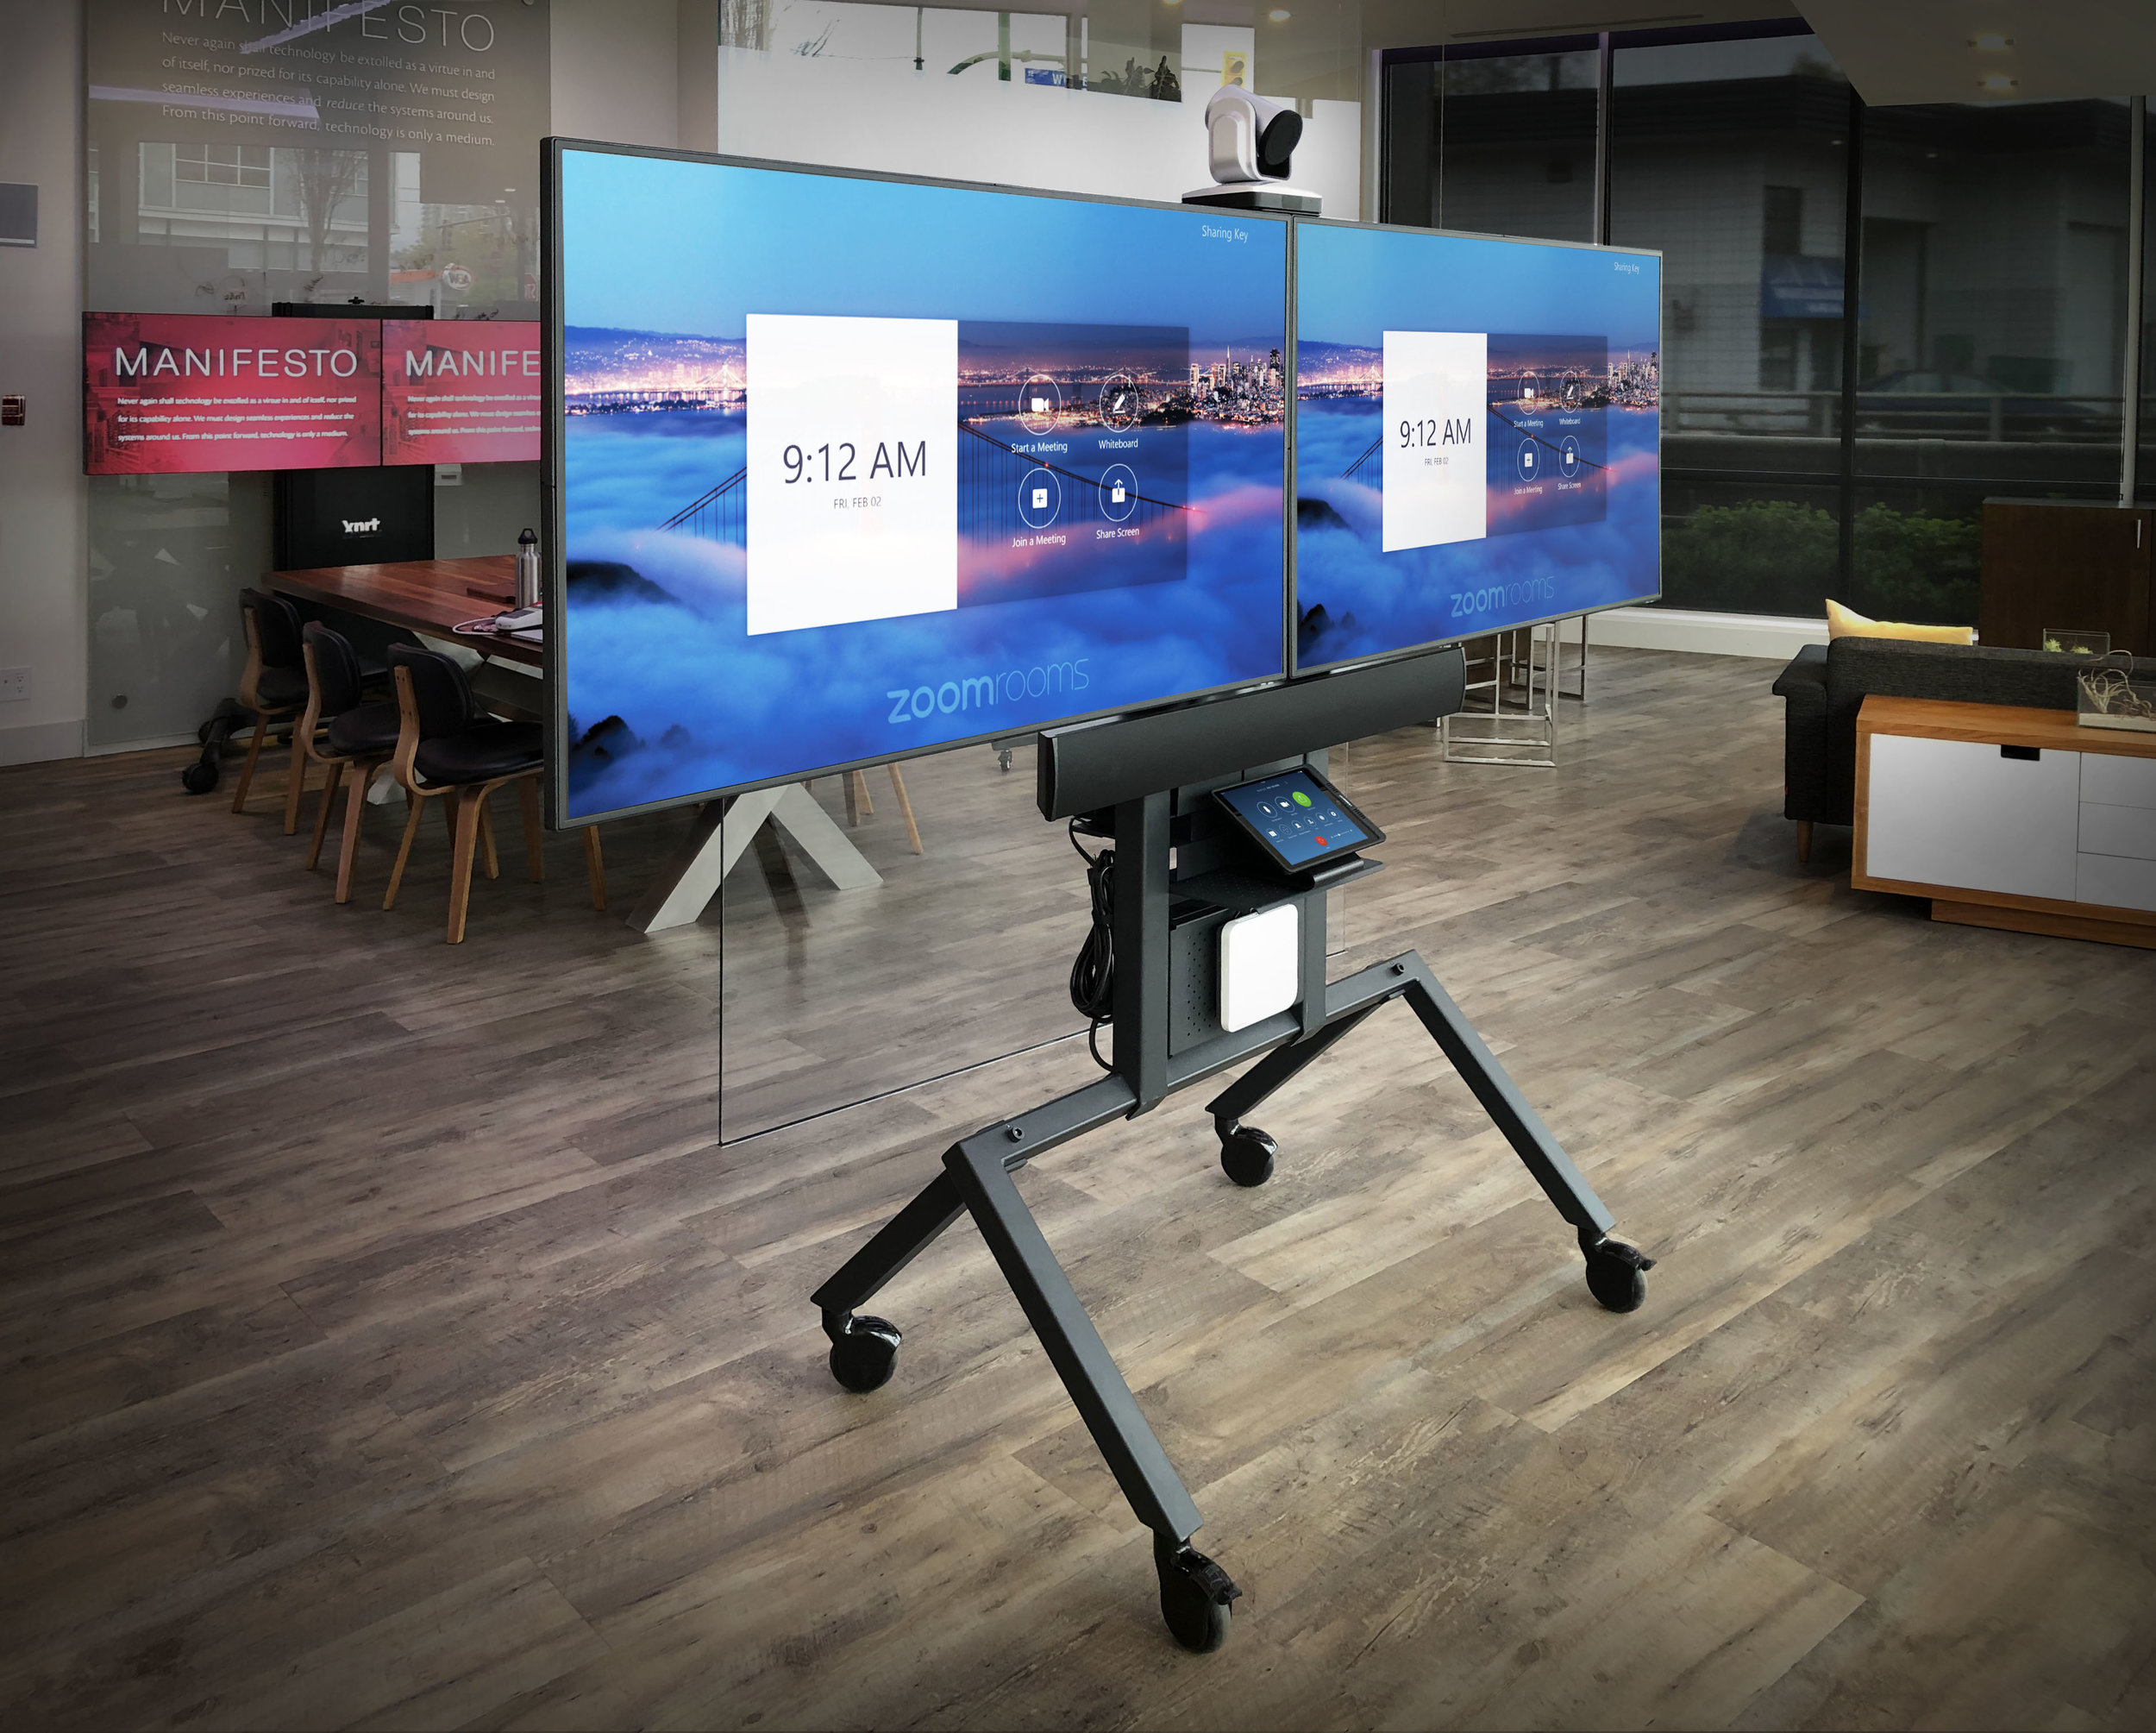 Xprt's Zoom Cart is a mobile communications hub with an iPad to Run the Zoom Rooms app, controlling a complete, dual-screen, Zoom conferencing experience.